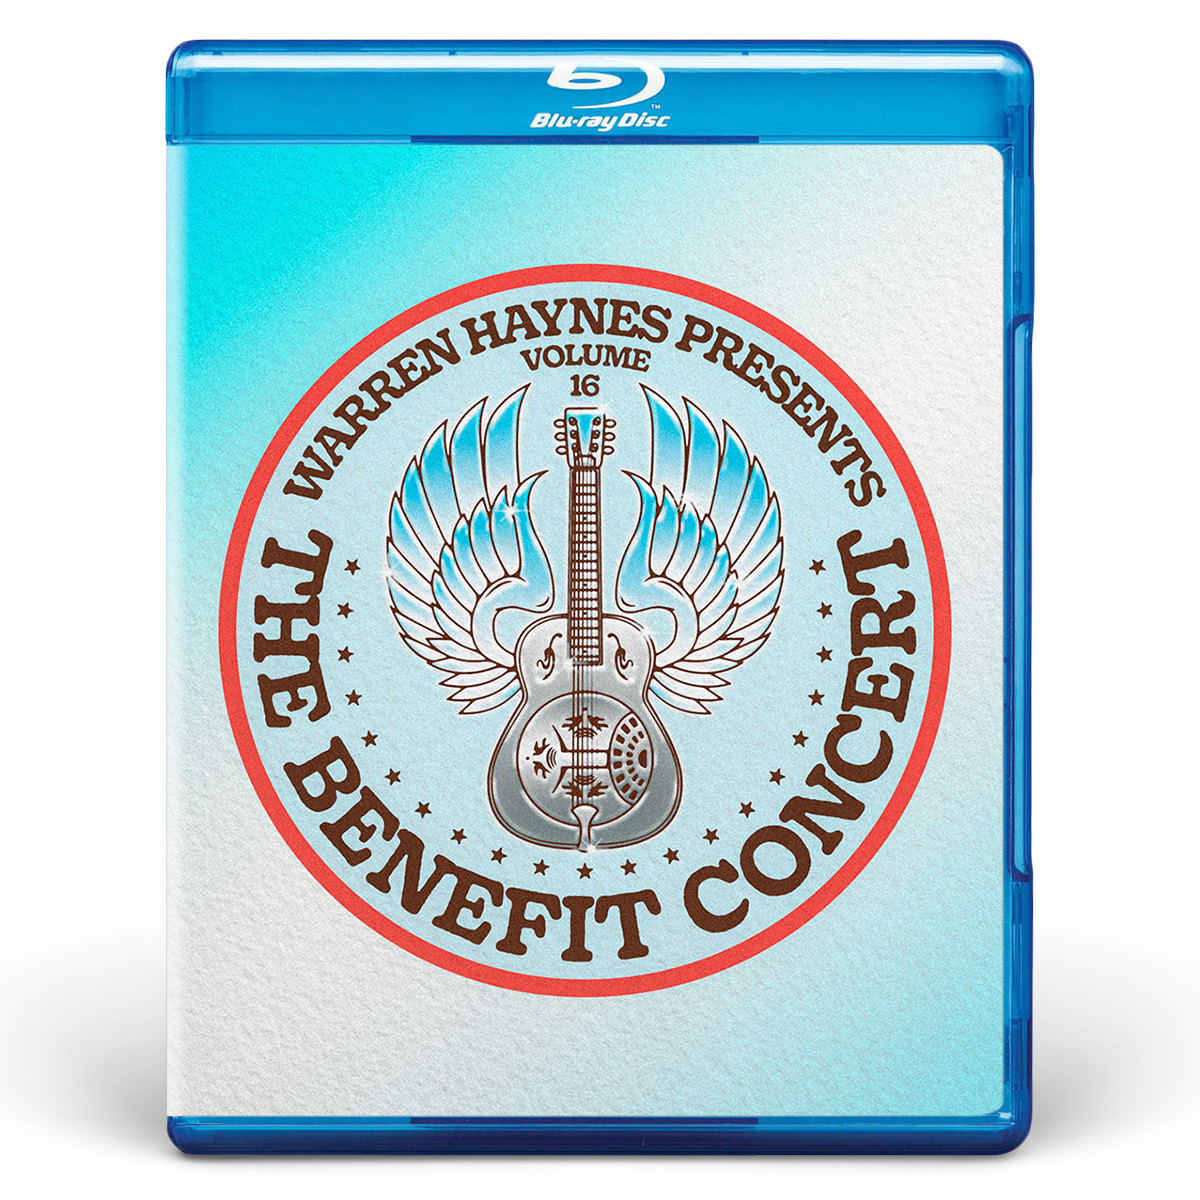 Blu-Ray Edition: Warren Haynes Presents: The Benefit Concert V. 16